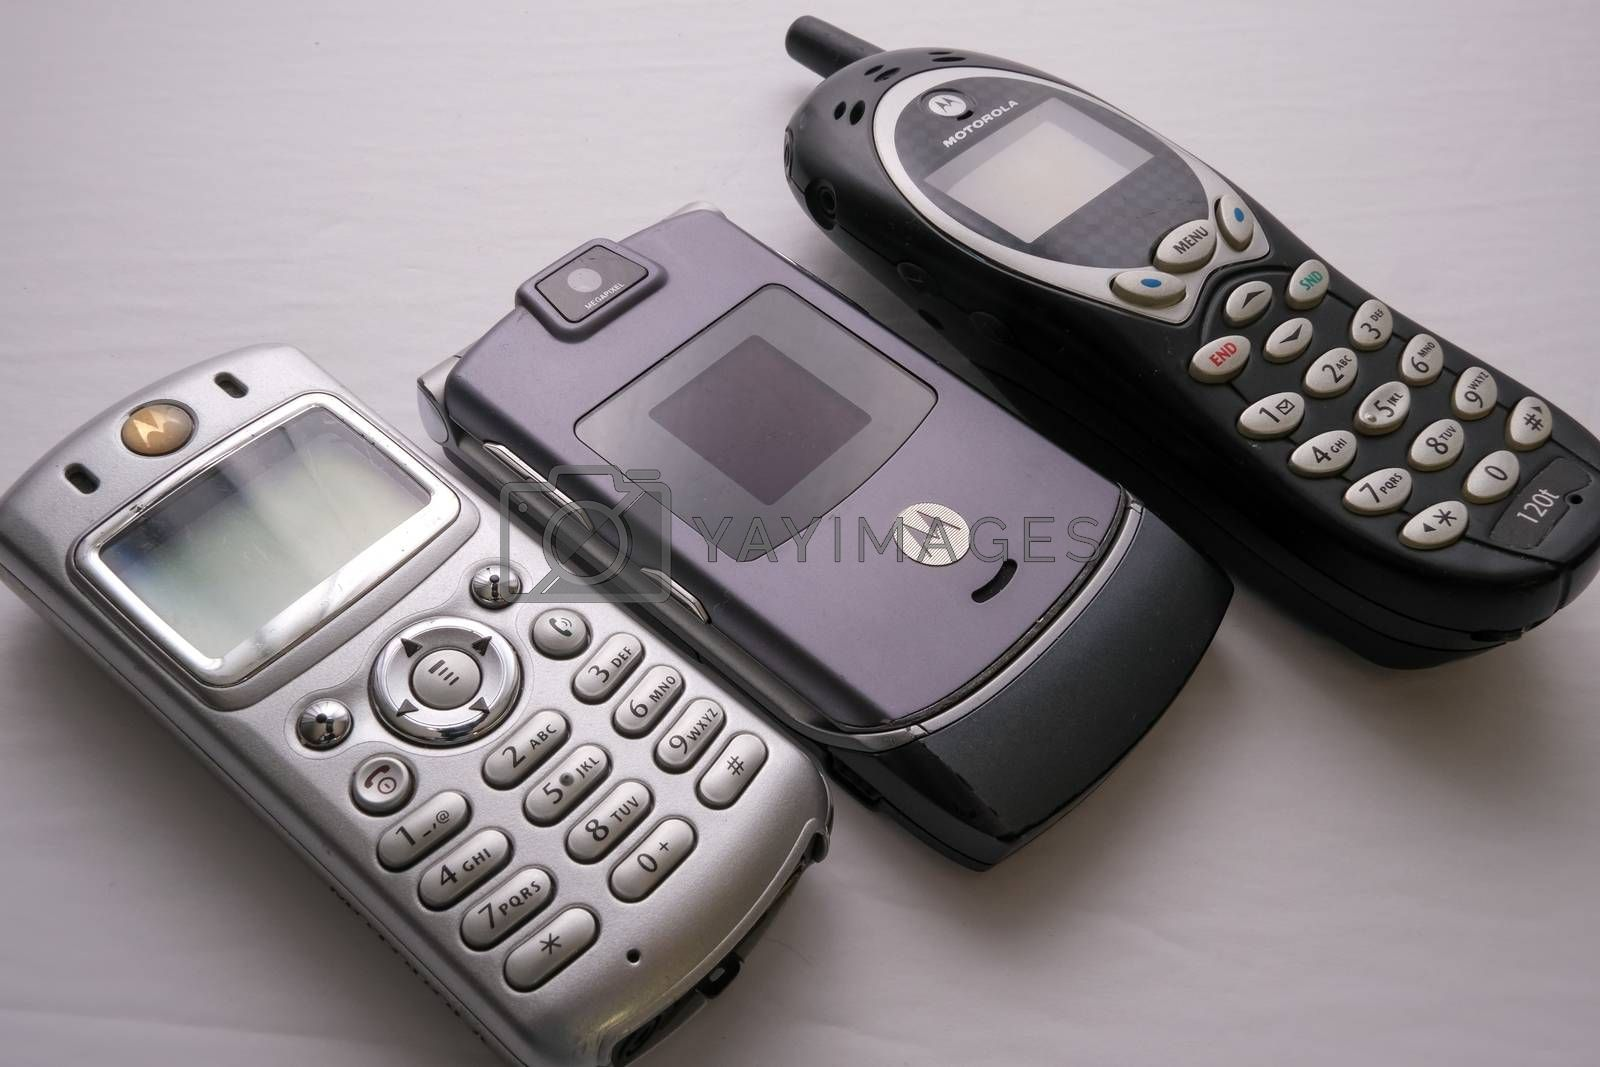 Royalty free image of Motorola Cell Phones from Early 2000s by colintemple